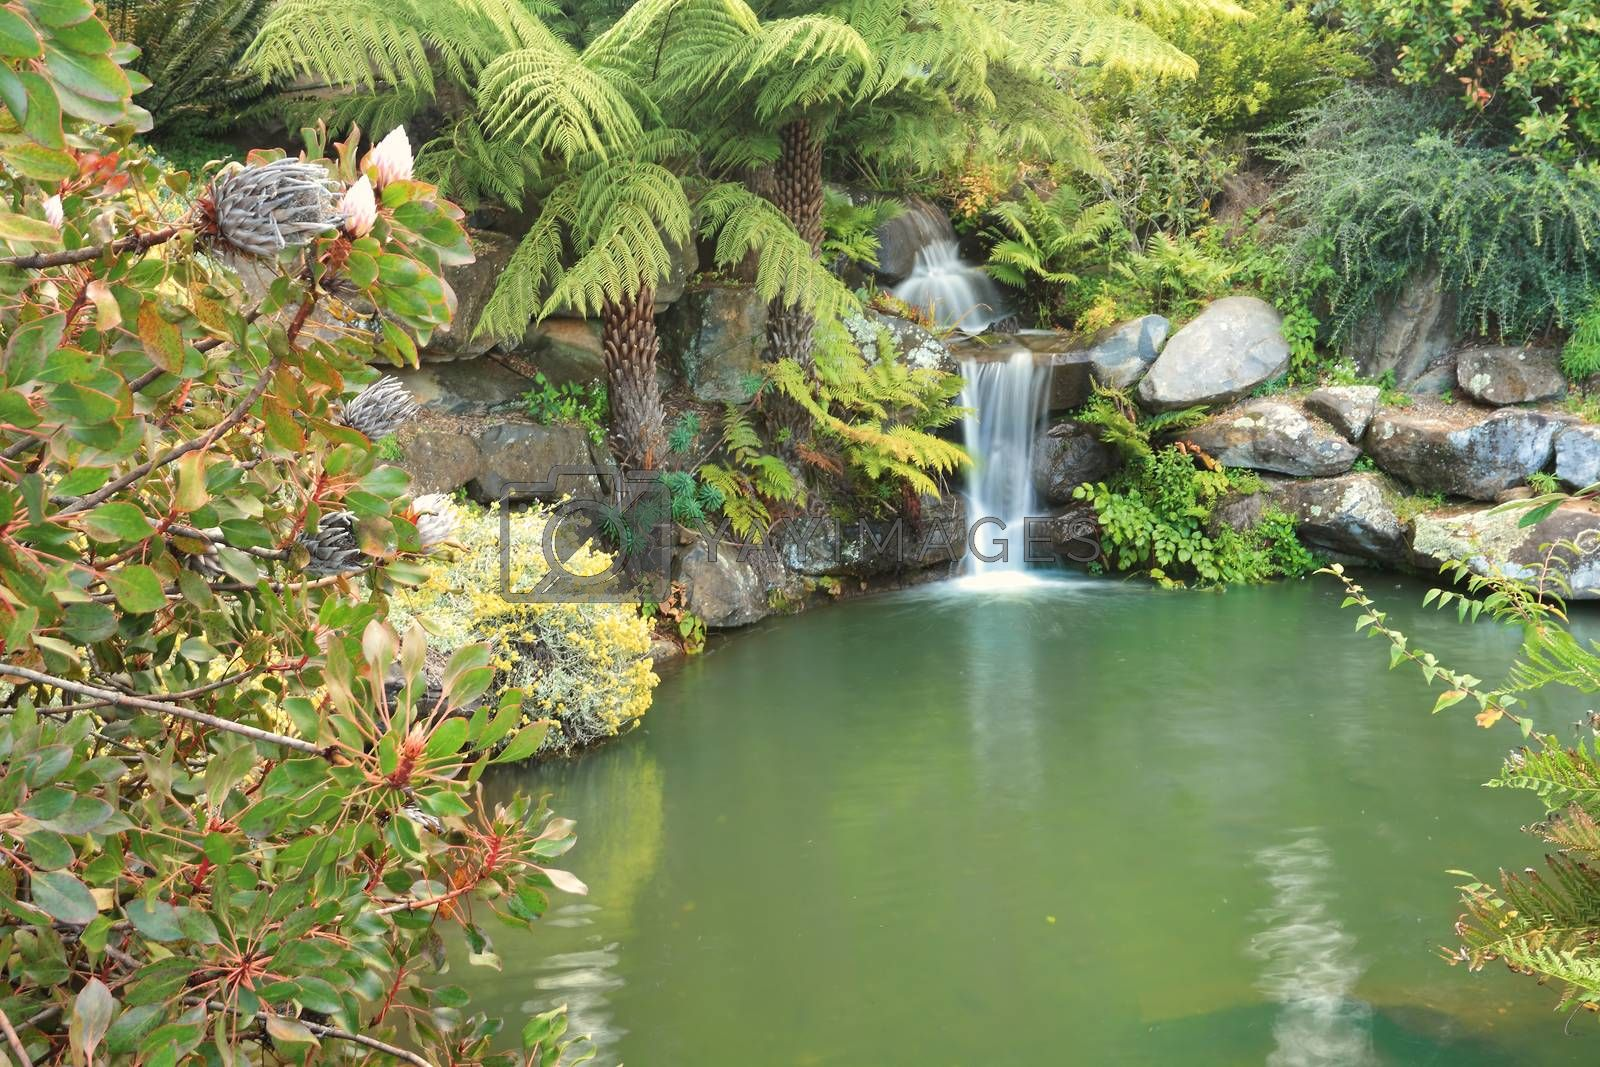 Royalty free image of Tranquil waterfall in lush environment Mt Tomah Australia by lovleah